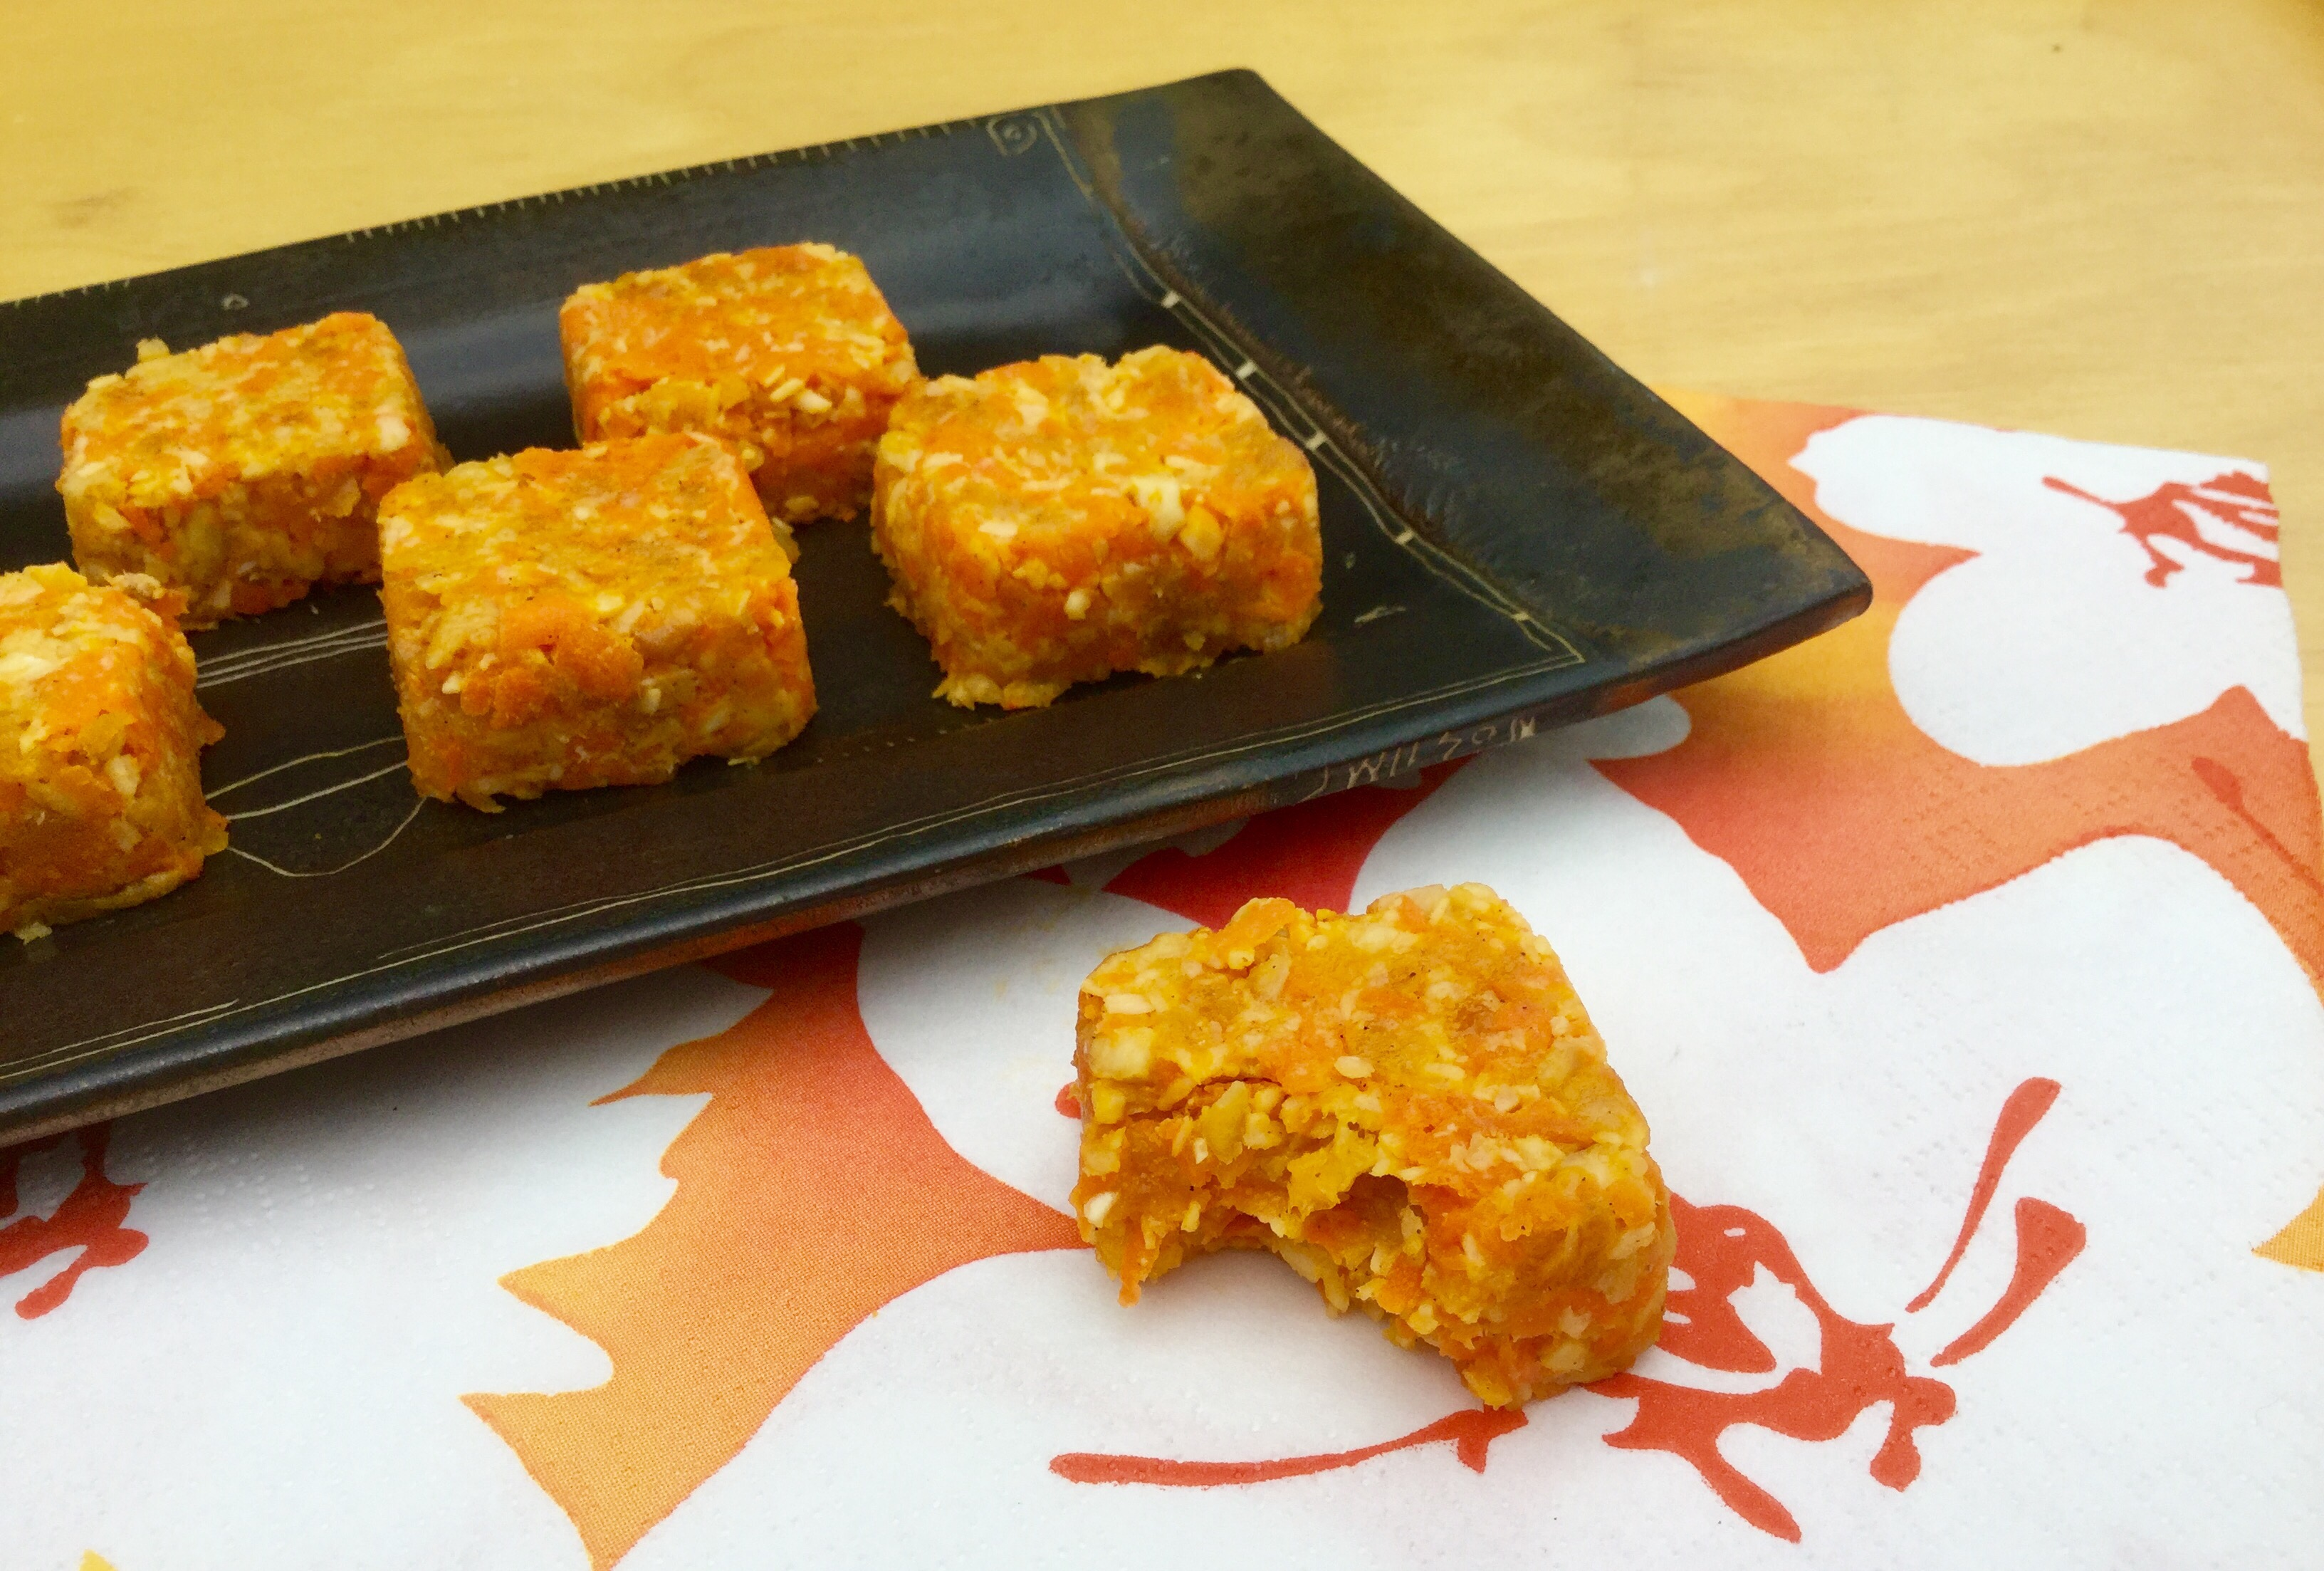 These energy squares are fresh and light with freshly grated carrot, apricots and cashews. There is no sugar needed as the apricots provide natural sweetness